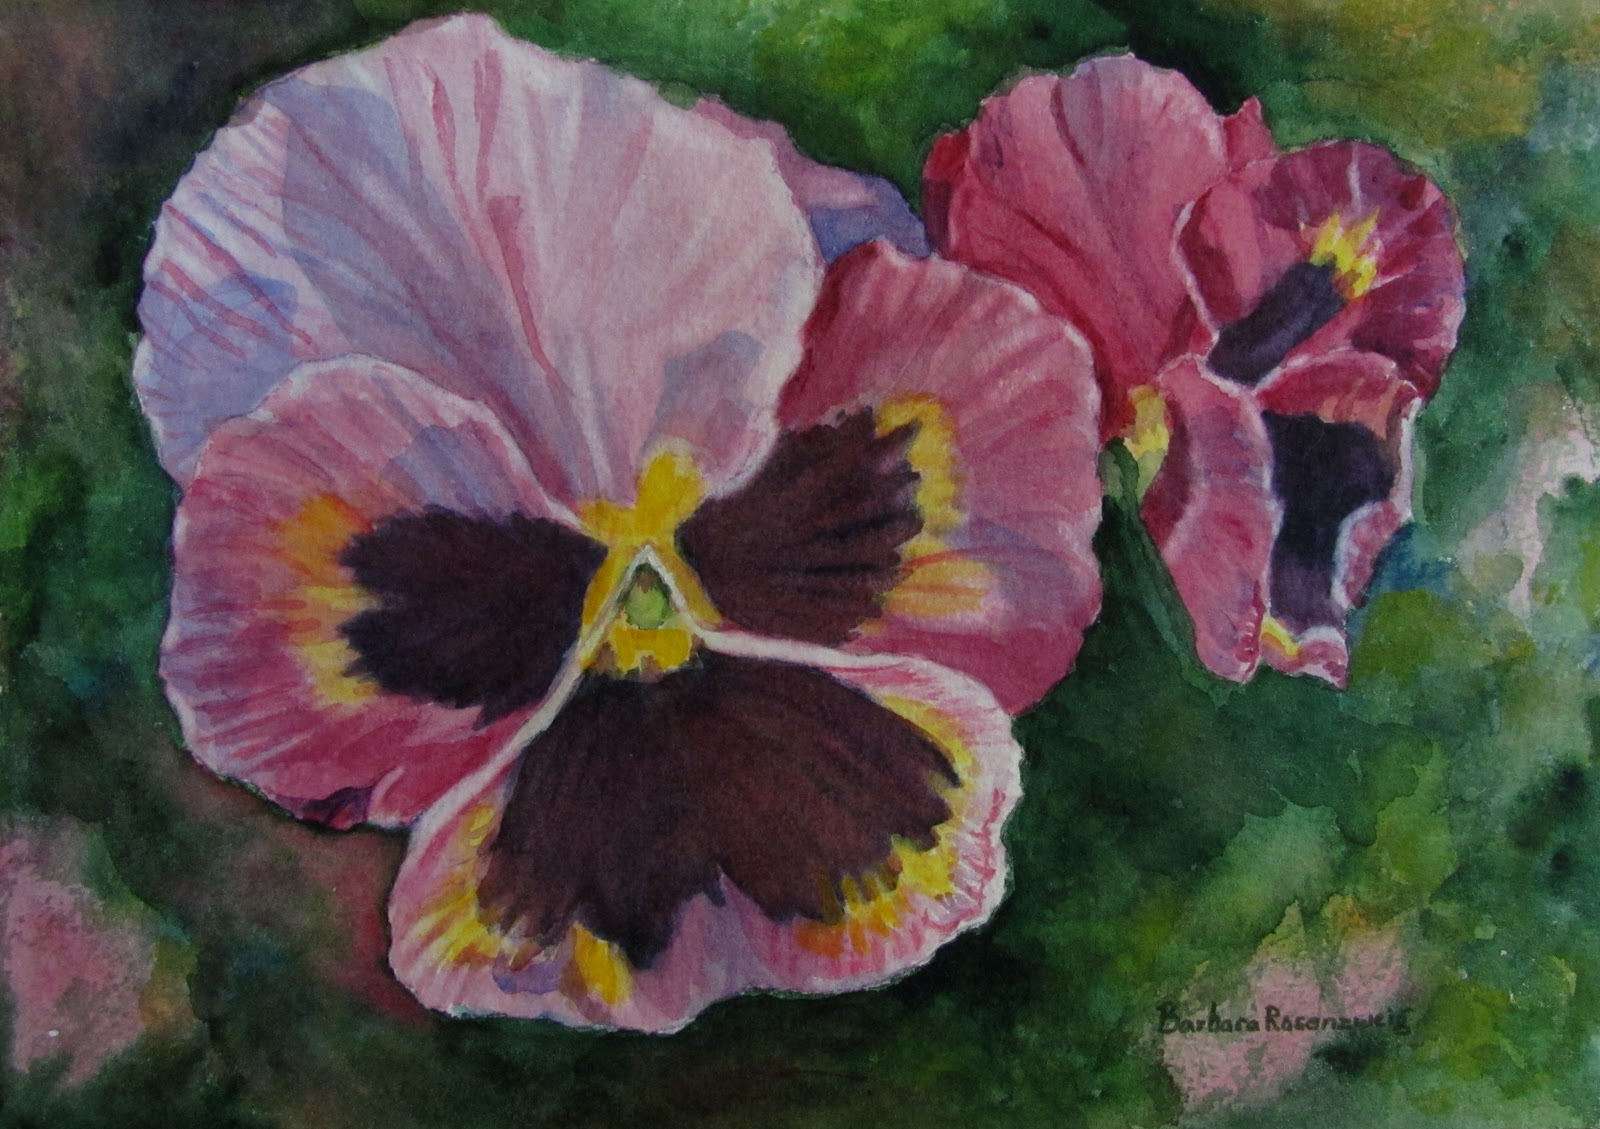 BLUE PURPLE FLOWERS SPRING THE BEAUTIFUL PANSY BEAUTIFULLY INTERPRETED